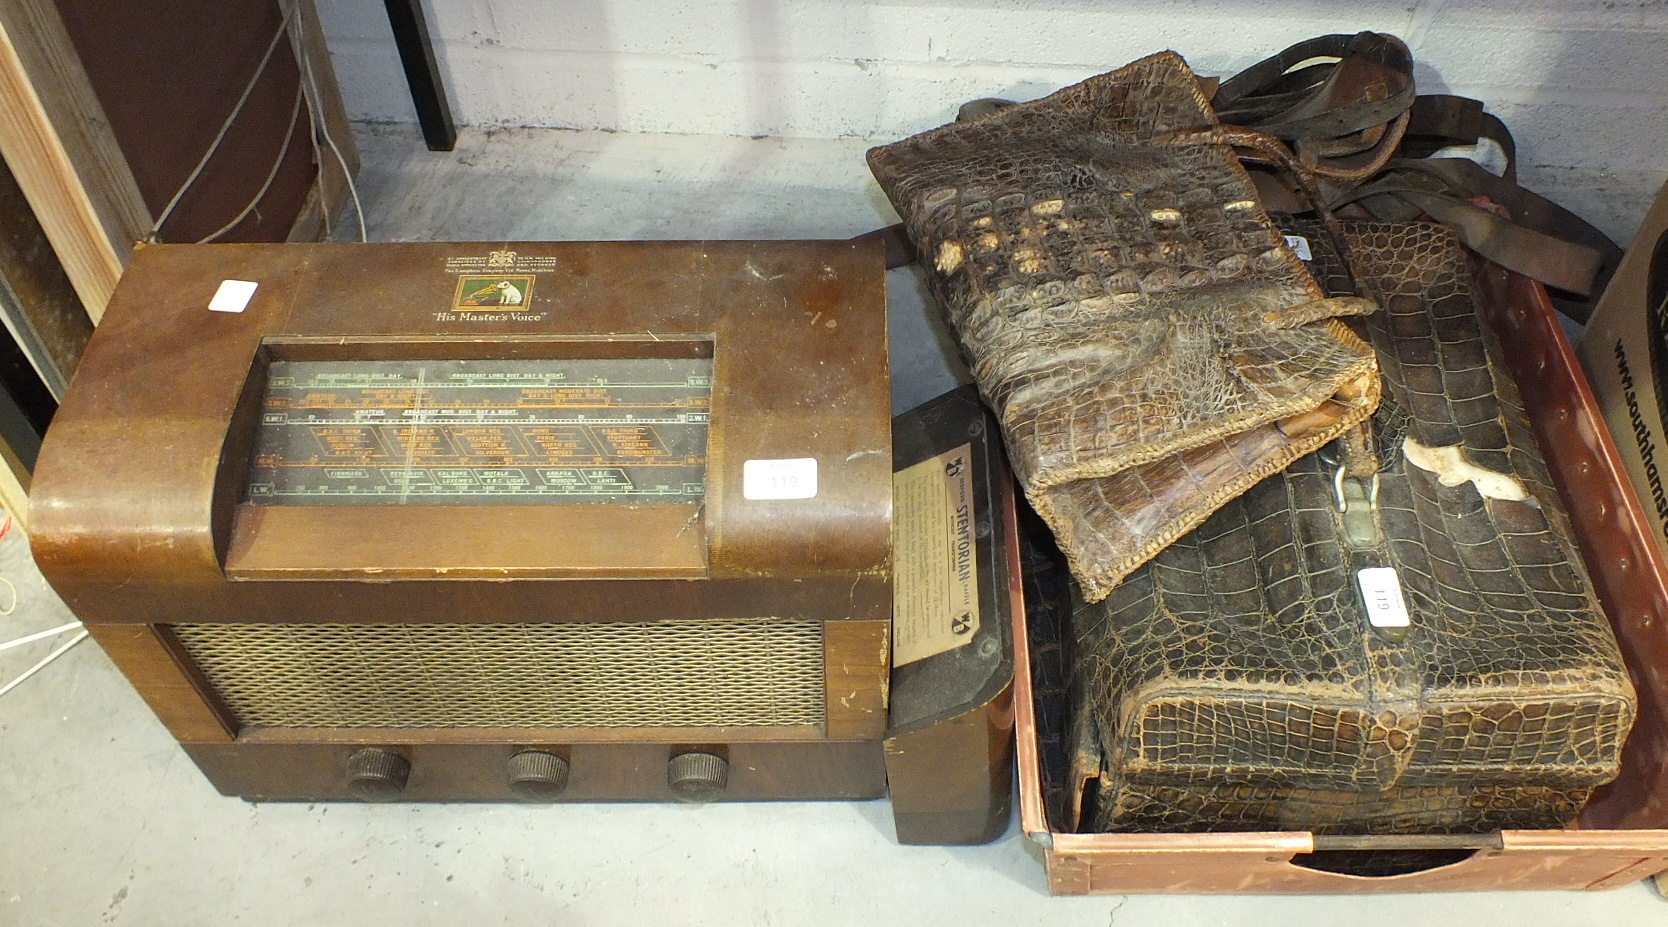 Lot 119 - An HMV model No.1120 wooden-cased vintage valve radio, (a/f), a reptile skin Gladstone bag, (a/f)